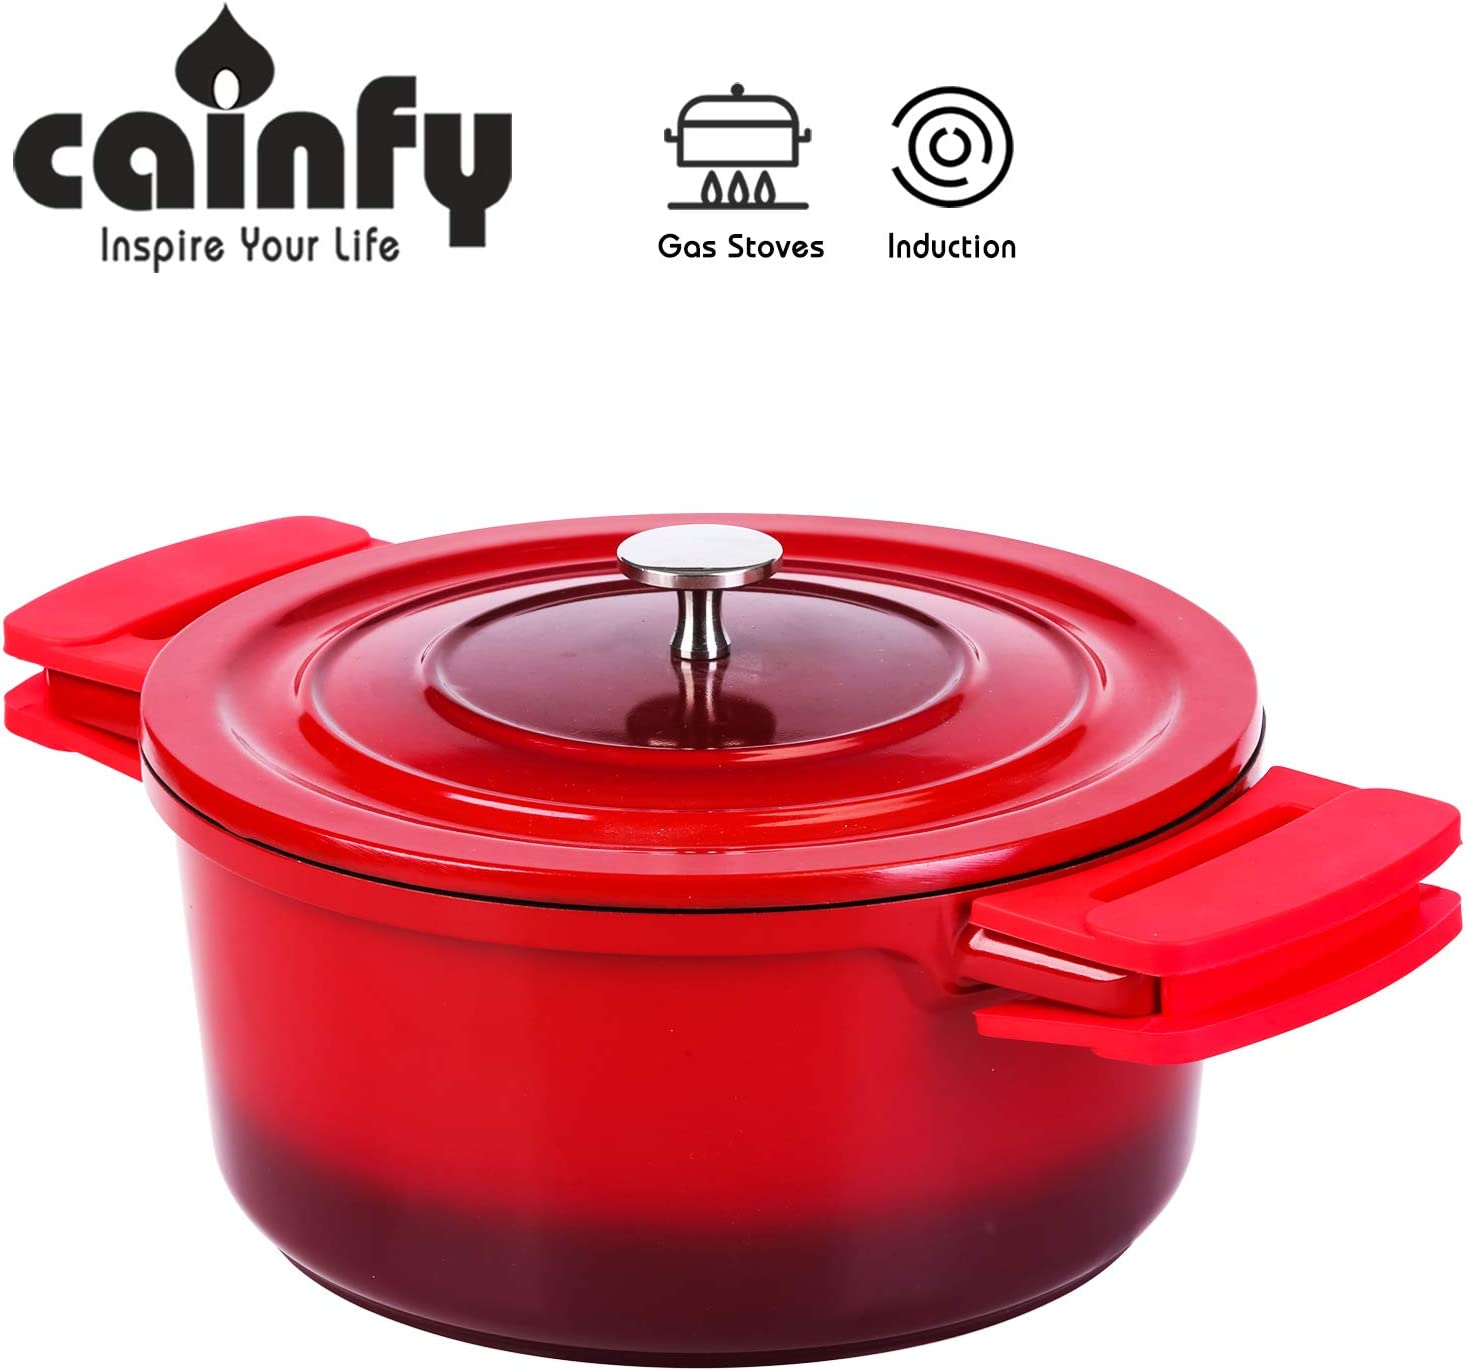 Enameled Cast Aluminum Dutch Oven with Lid 4.5 Quart - Round Bread Baking Cookware Braising Pot - Enameled Coated Casserole Dish with Large Loop Silicone Handles